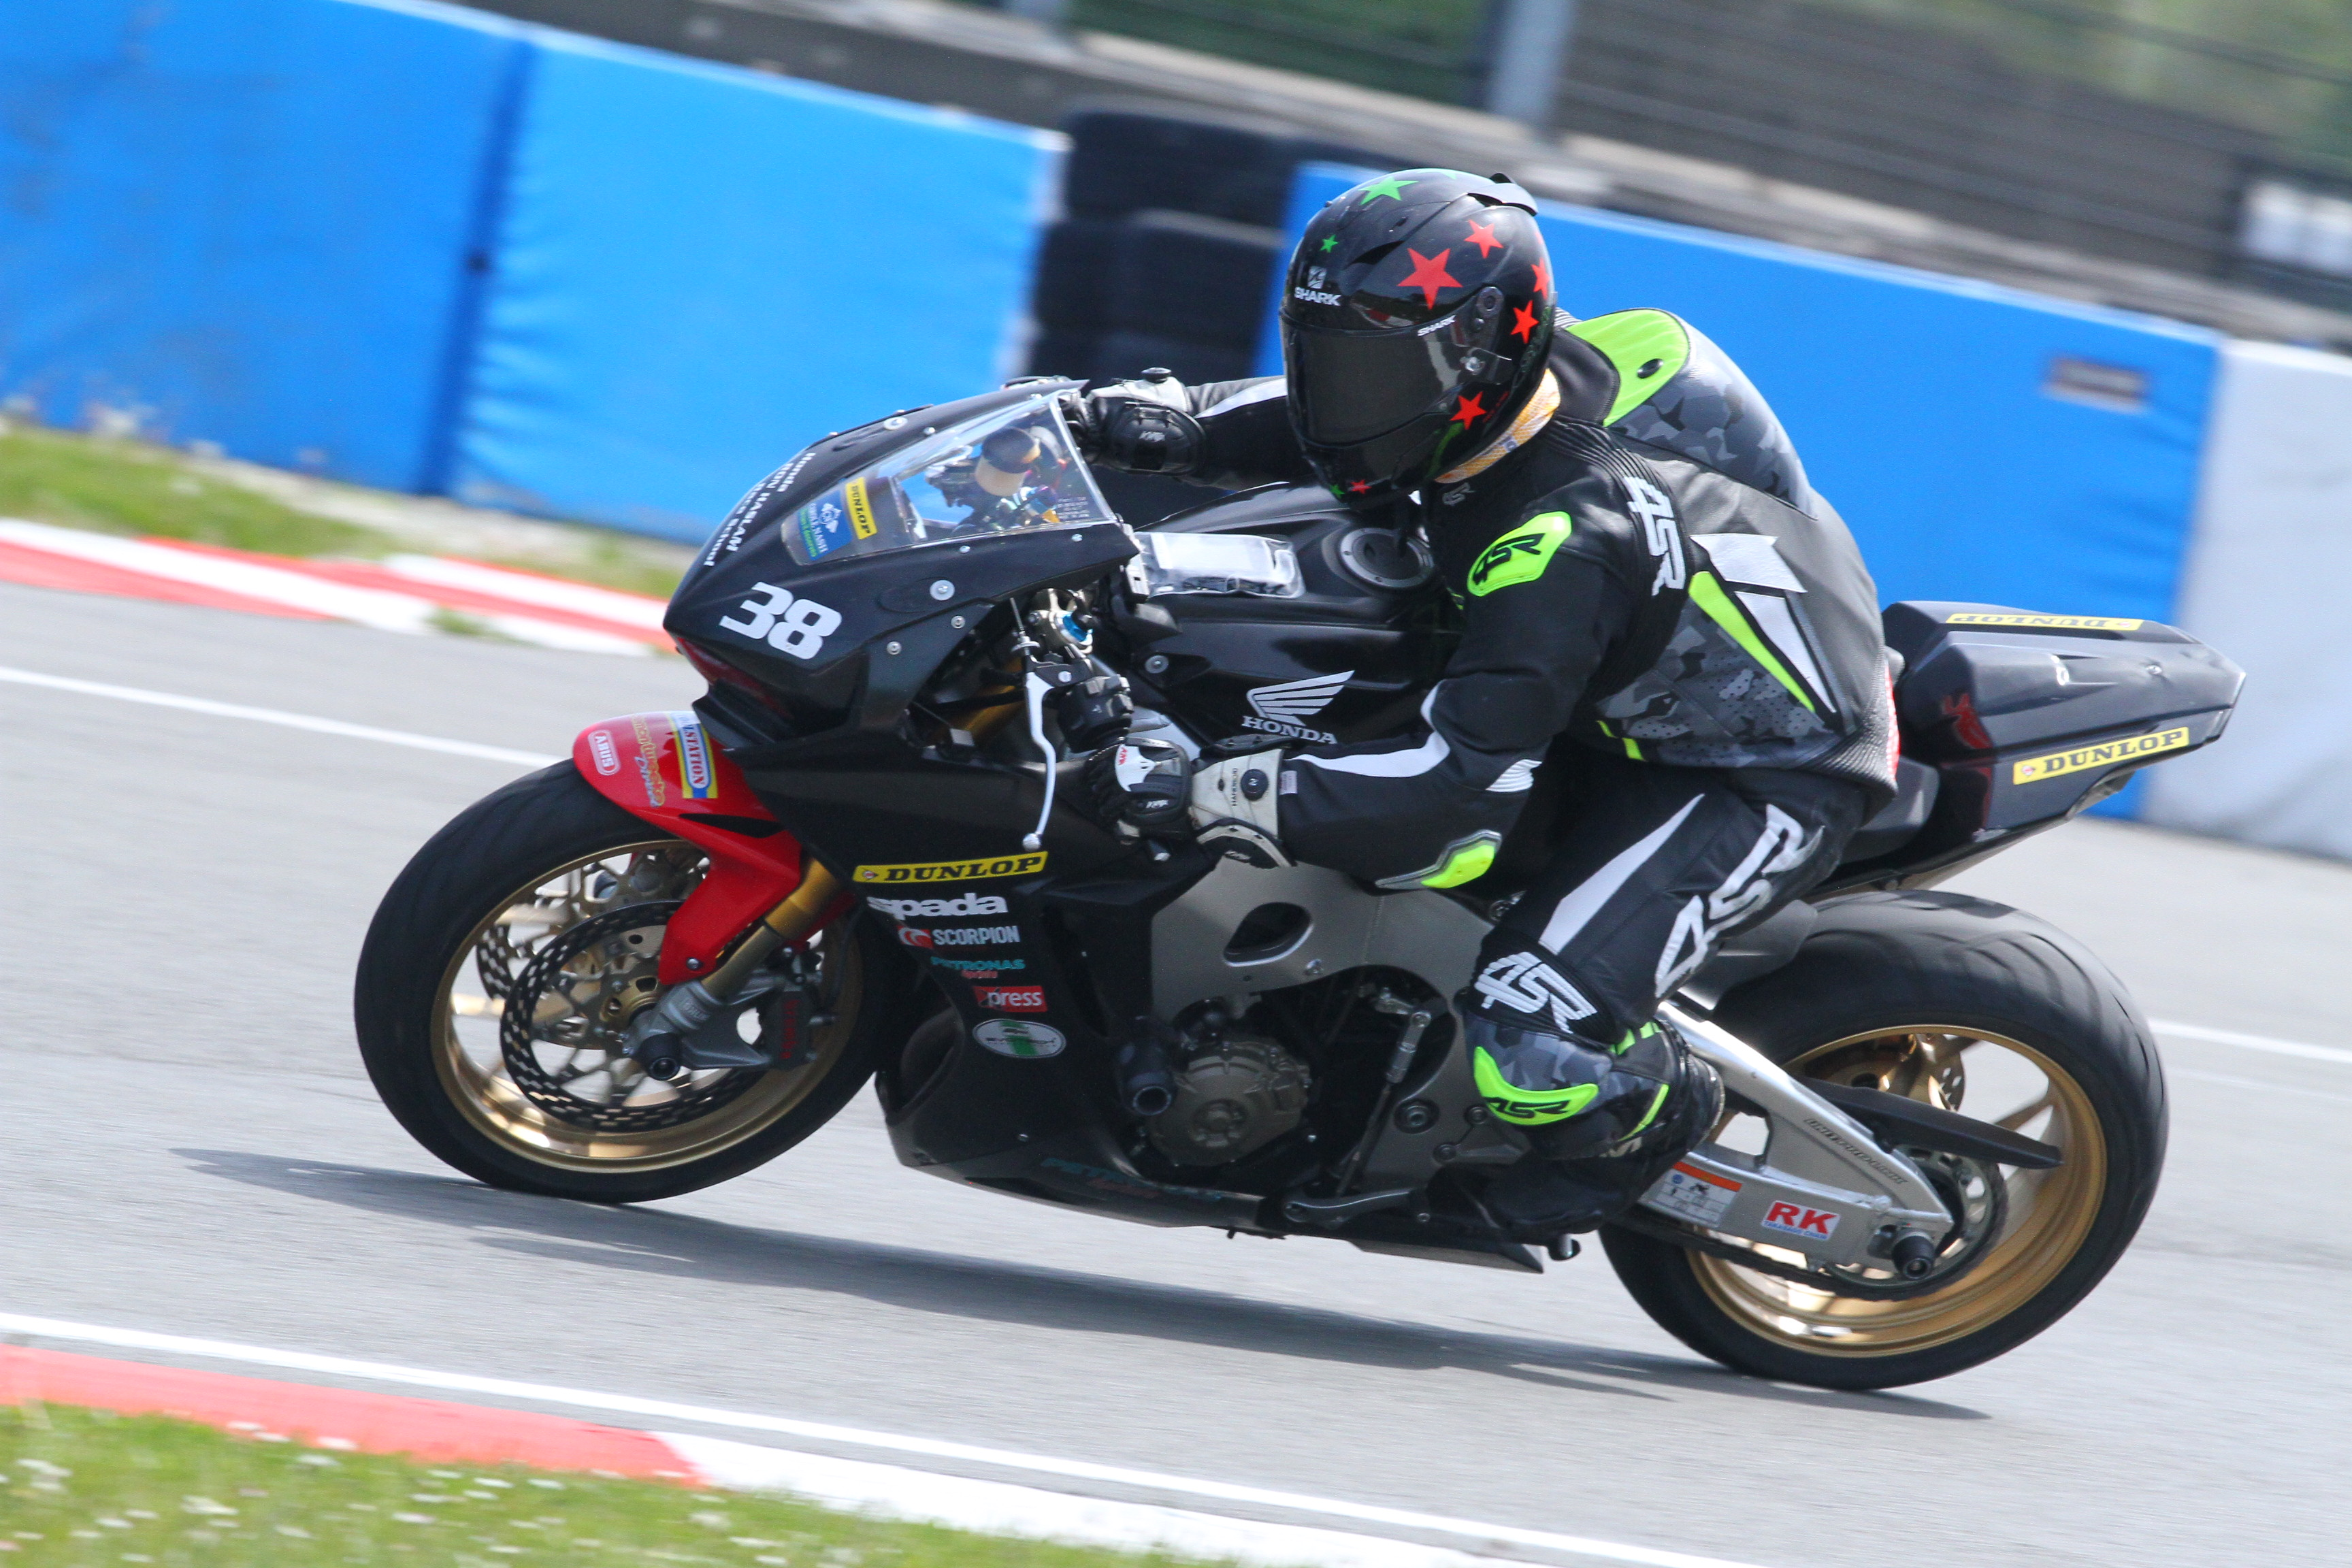 Ron Haslam race school